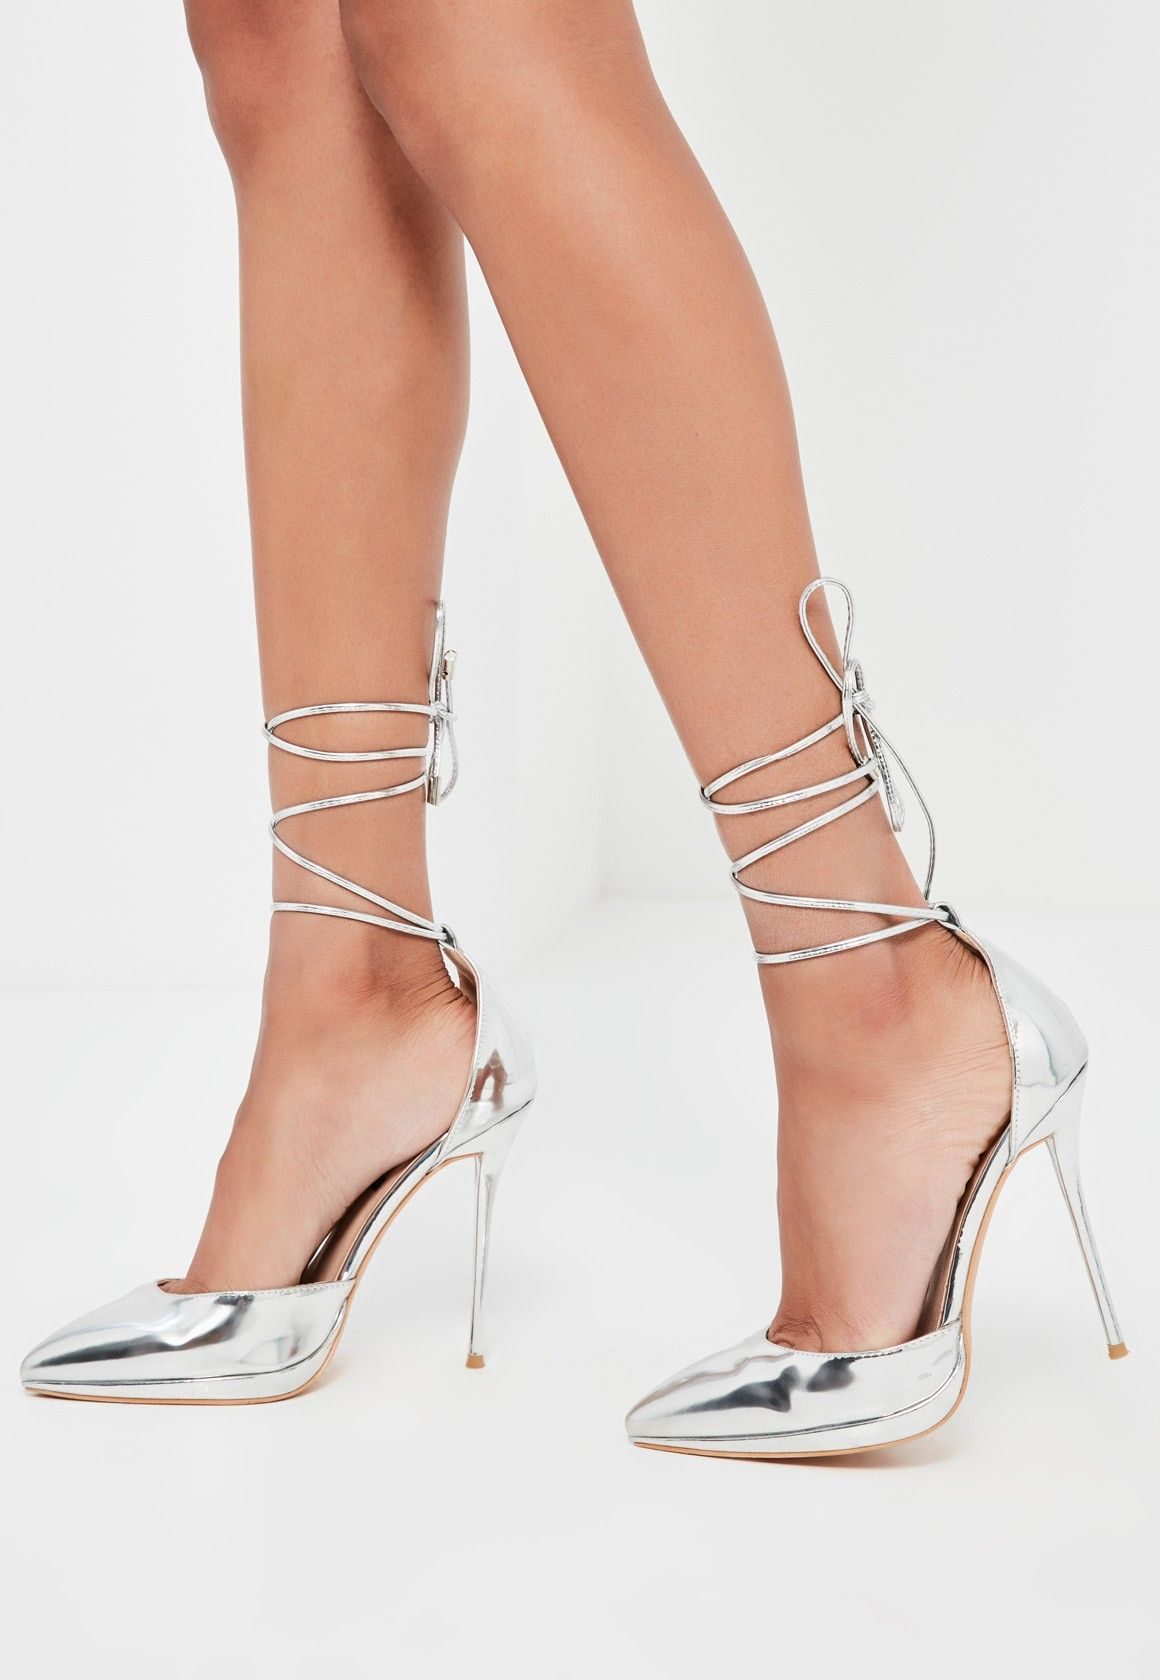 Missguided - Peace Love Silver Lace Up Pumps | Clothes/Shoes ...